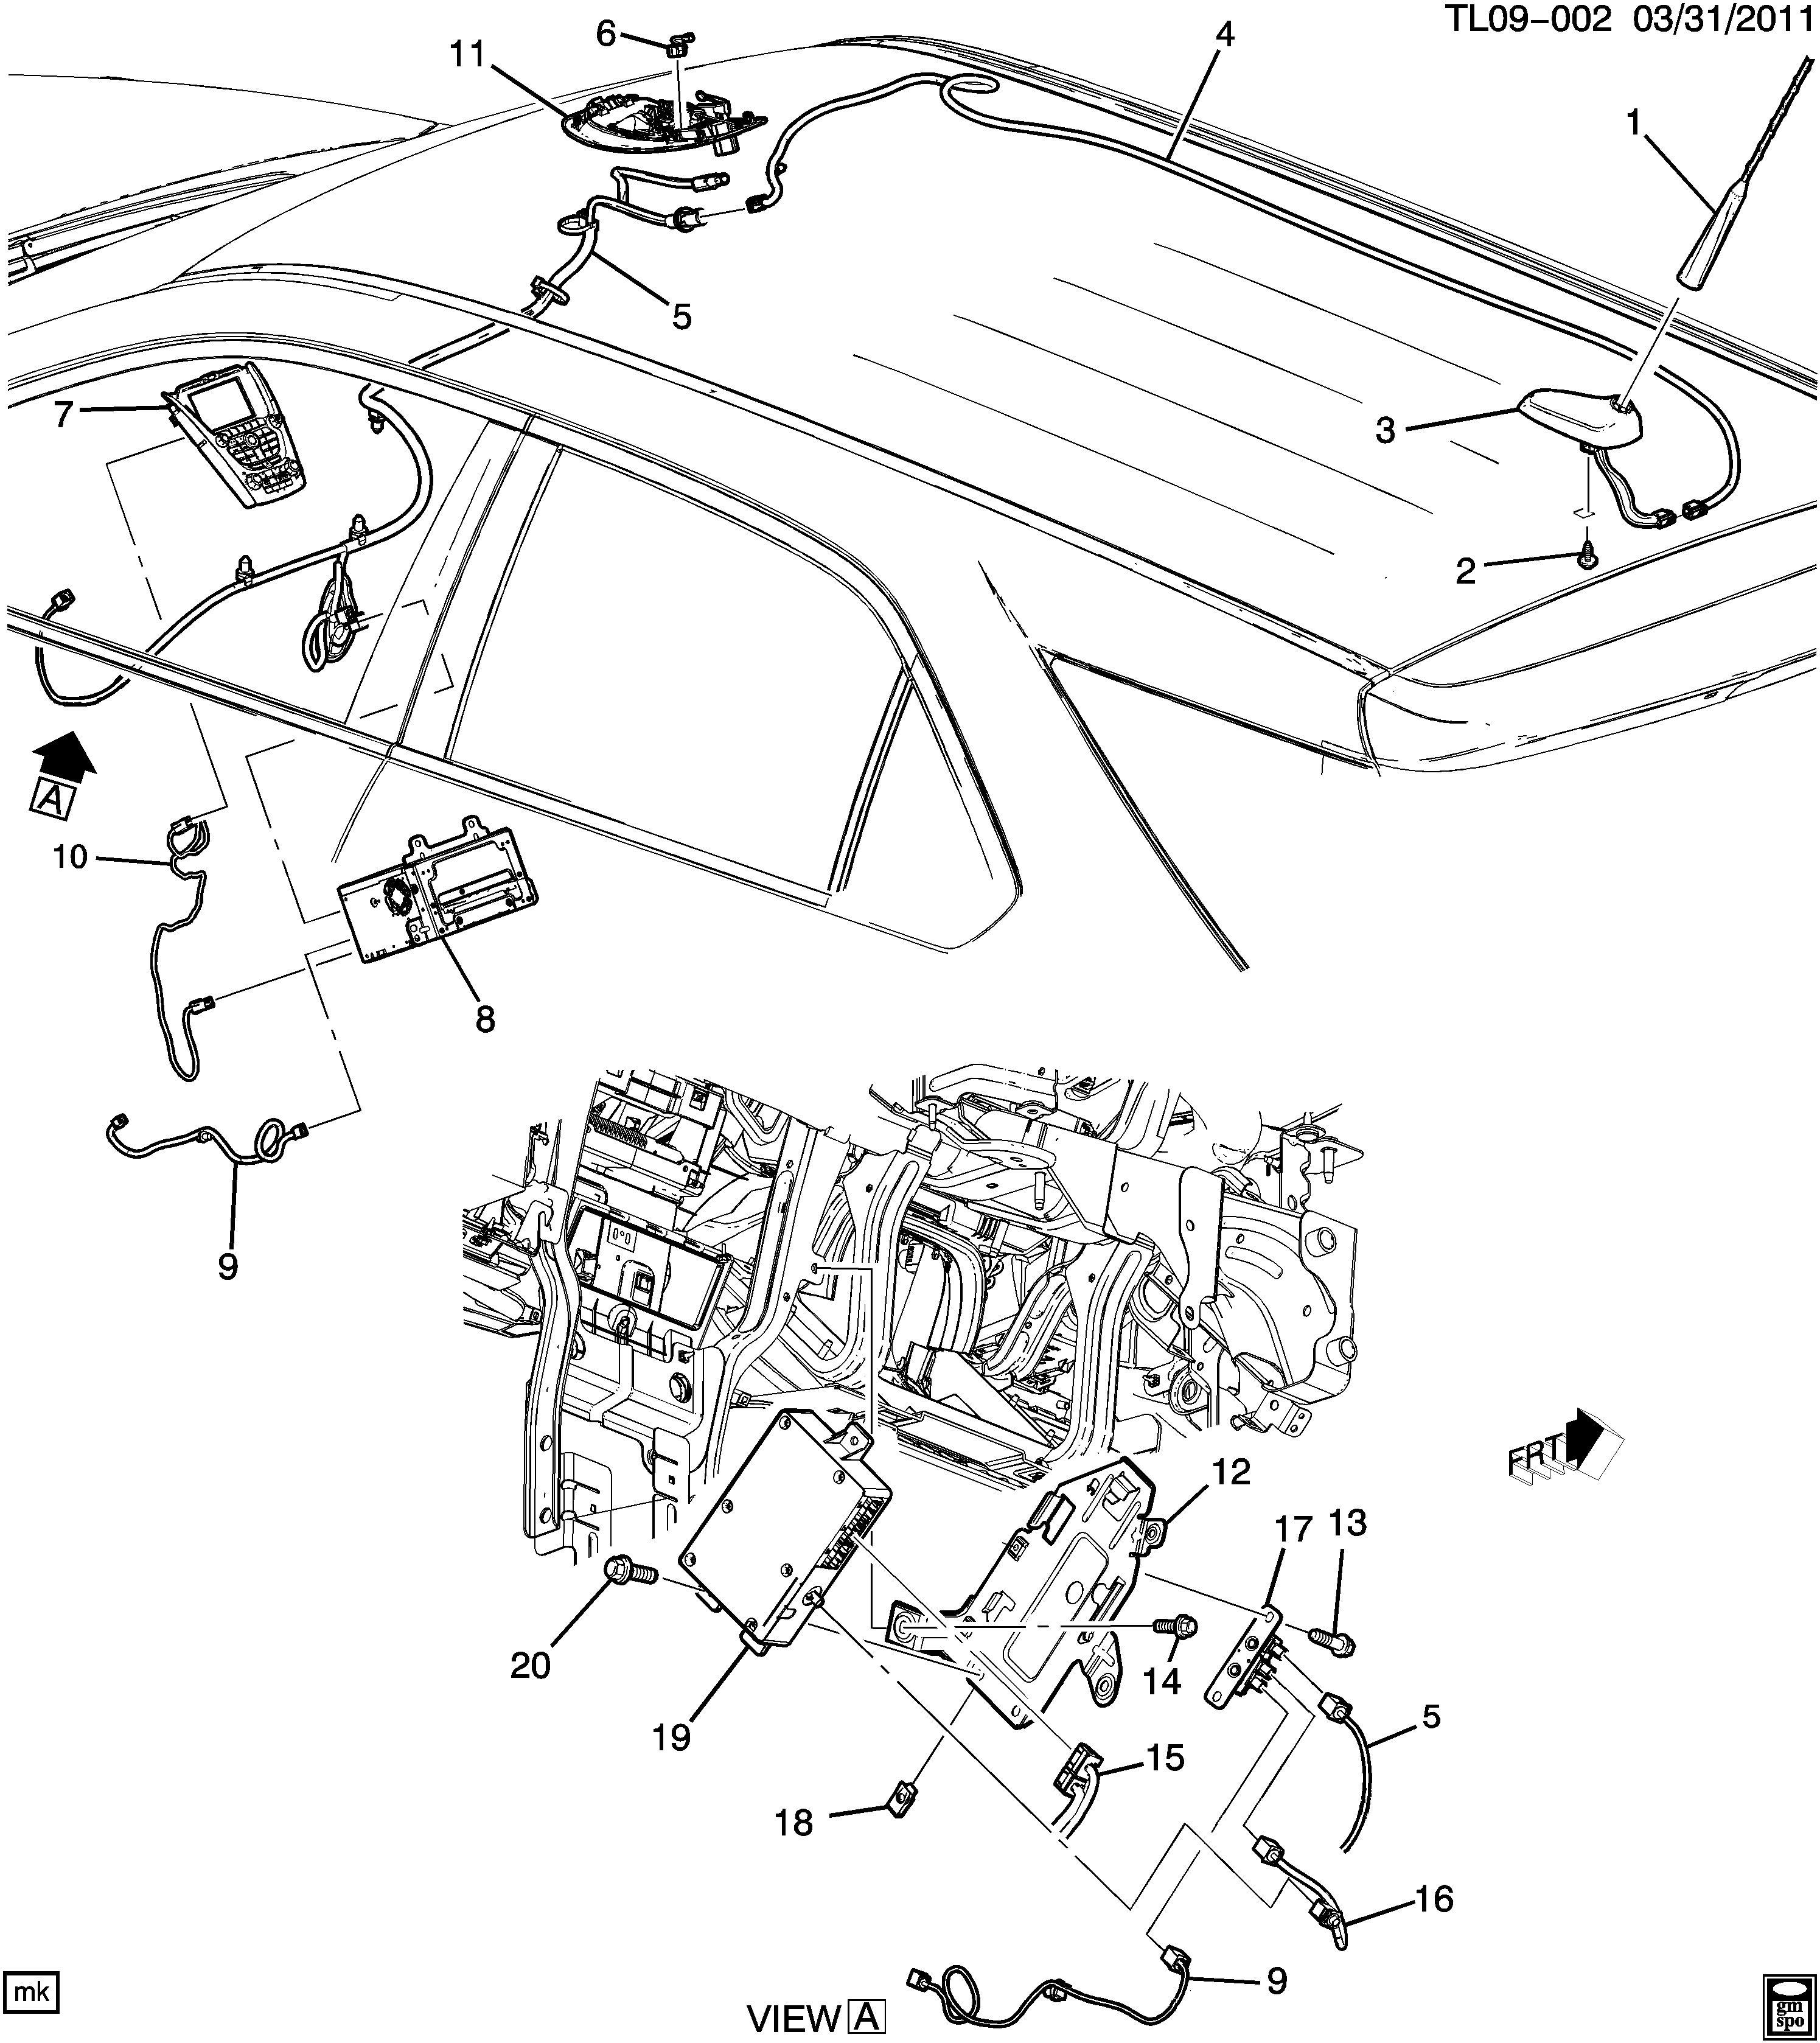 Jd 445 Tractor Ignition Switch Wiring Diagram furthermore P0604 Pcm Random Access Mem Ram With 2007 Chevy Tahoe Door Parts Diagram moreover 2000 Gmc Sierra 5 3 Oxygen Sensor Wiring Diagram furthermore 2005 Gmc Canyon Parts Diagram as well 14 More 4 3 Liter V6 Vortec Engine Diagram Photograph. on chevy engine wiring diagram